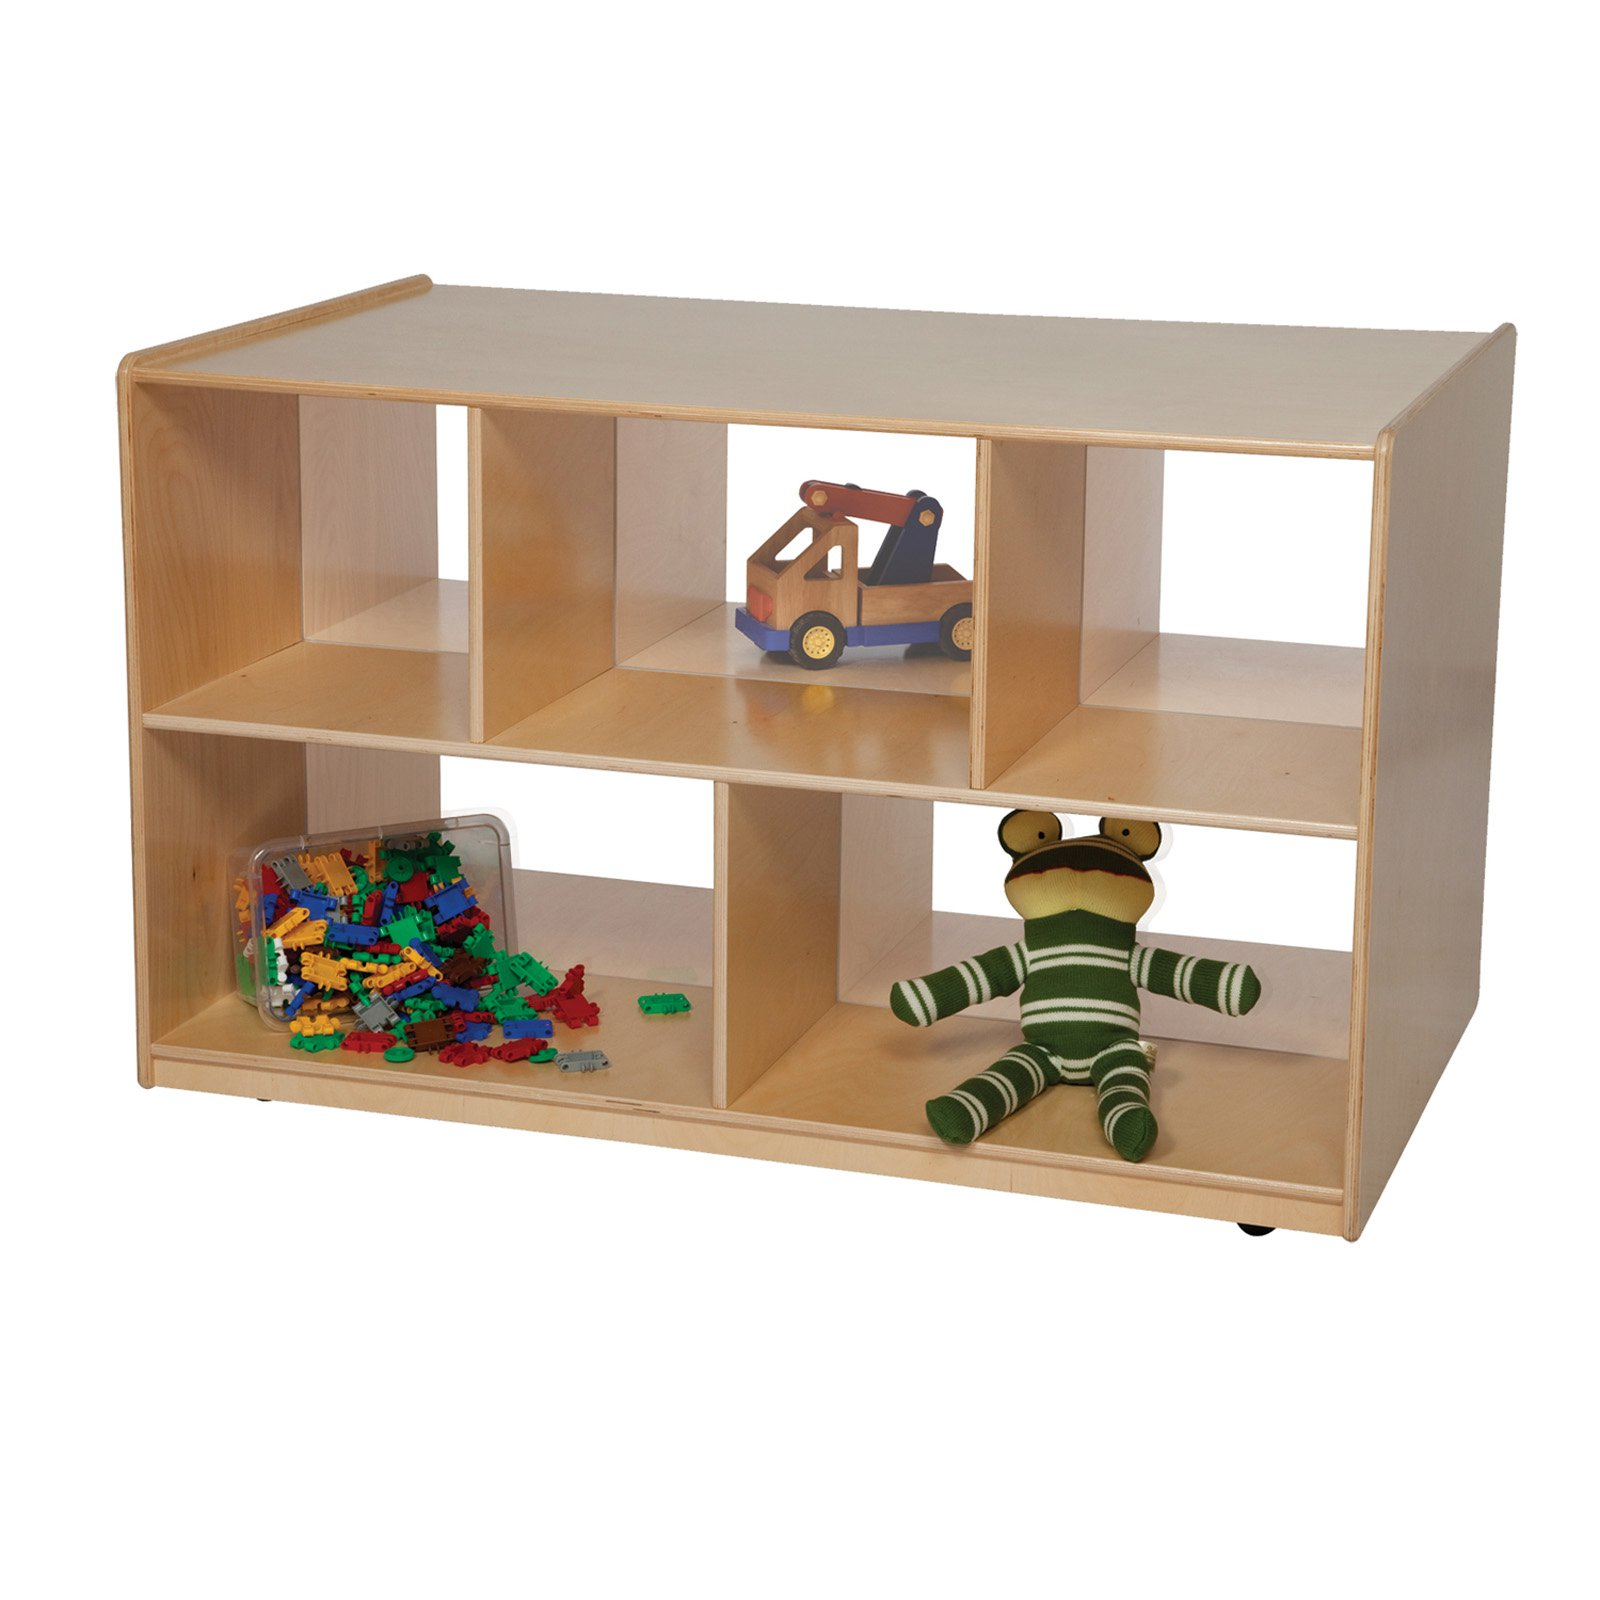 Wood Designs Double Storage Island with Acrylic - 30H in.